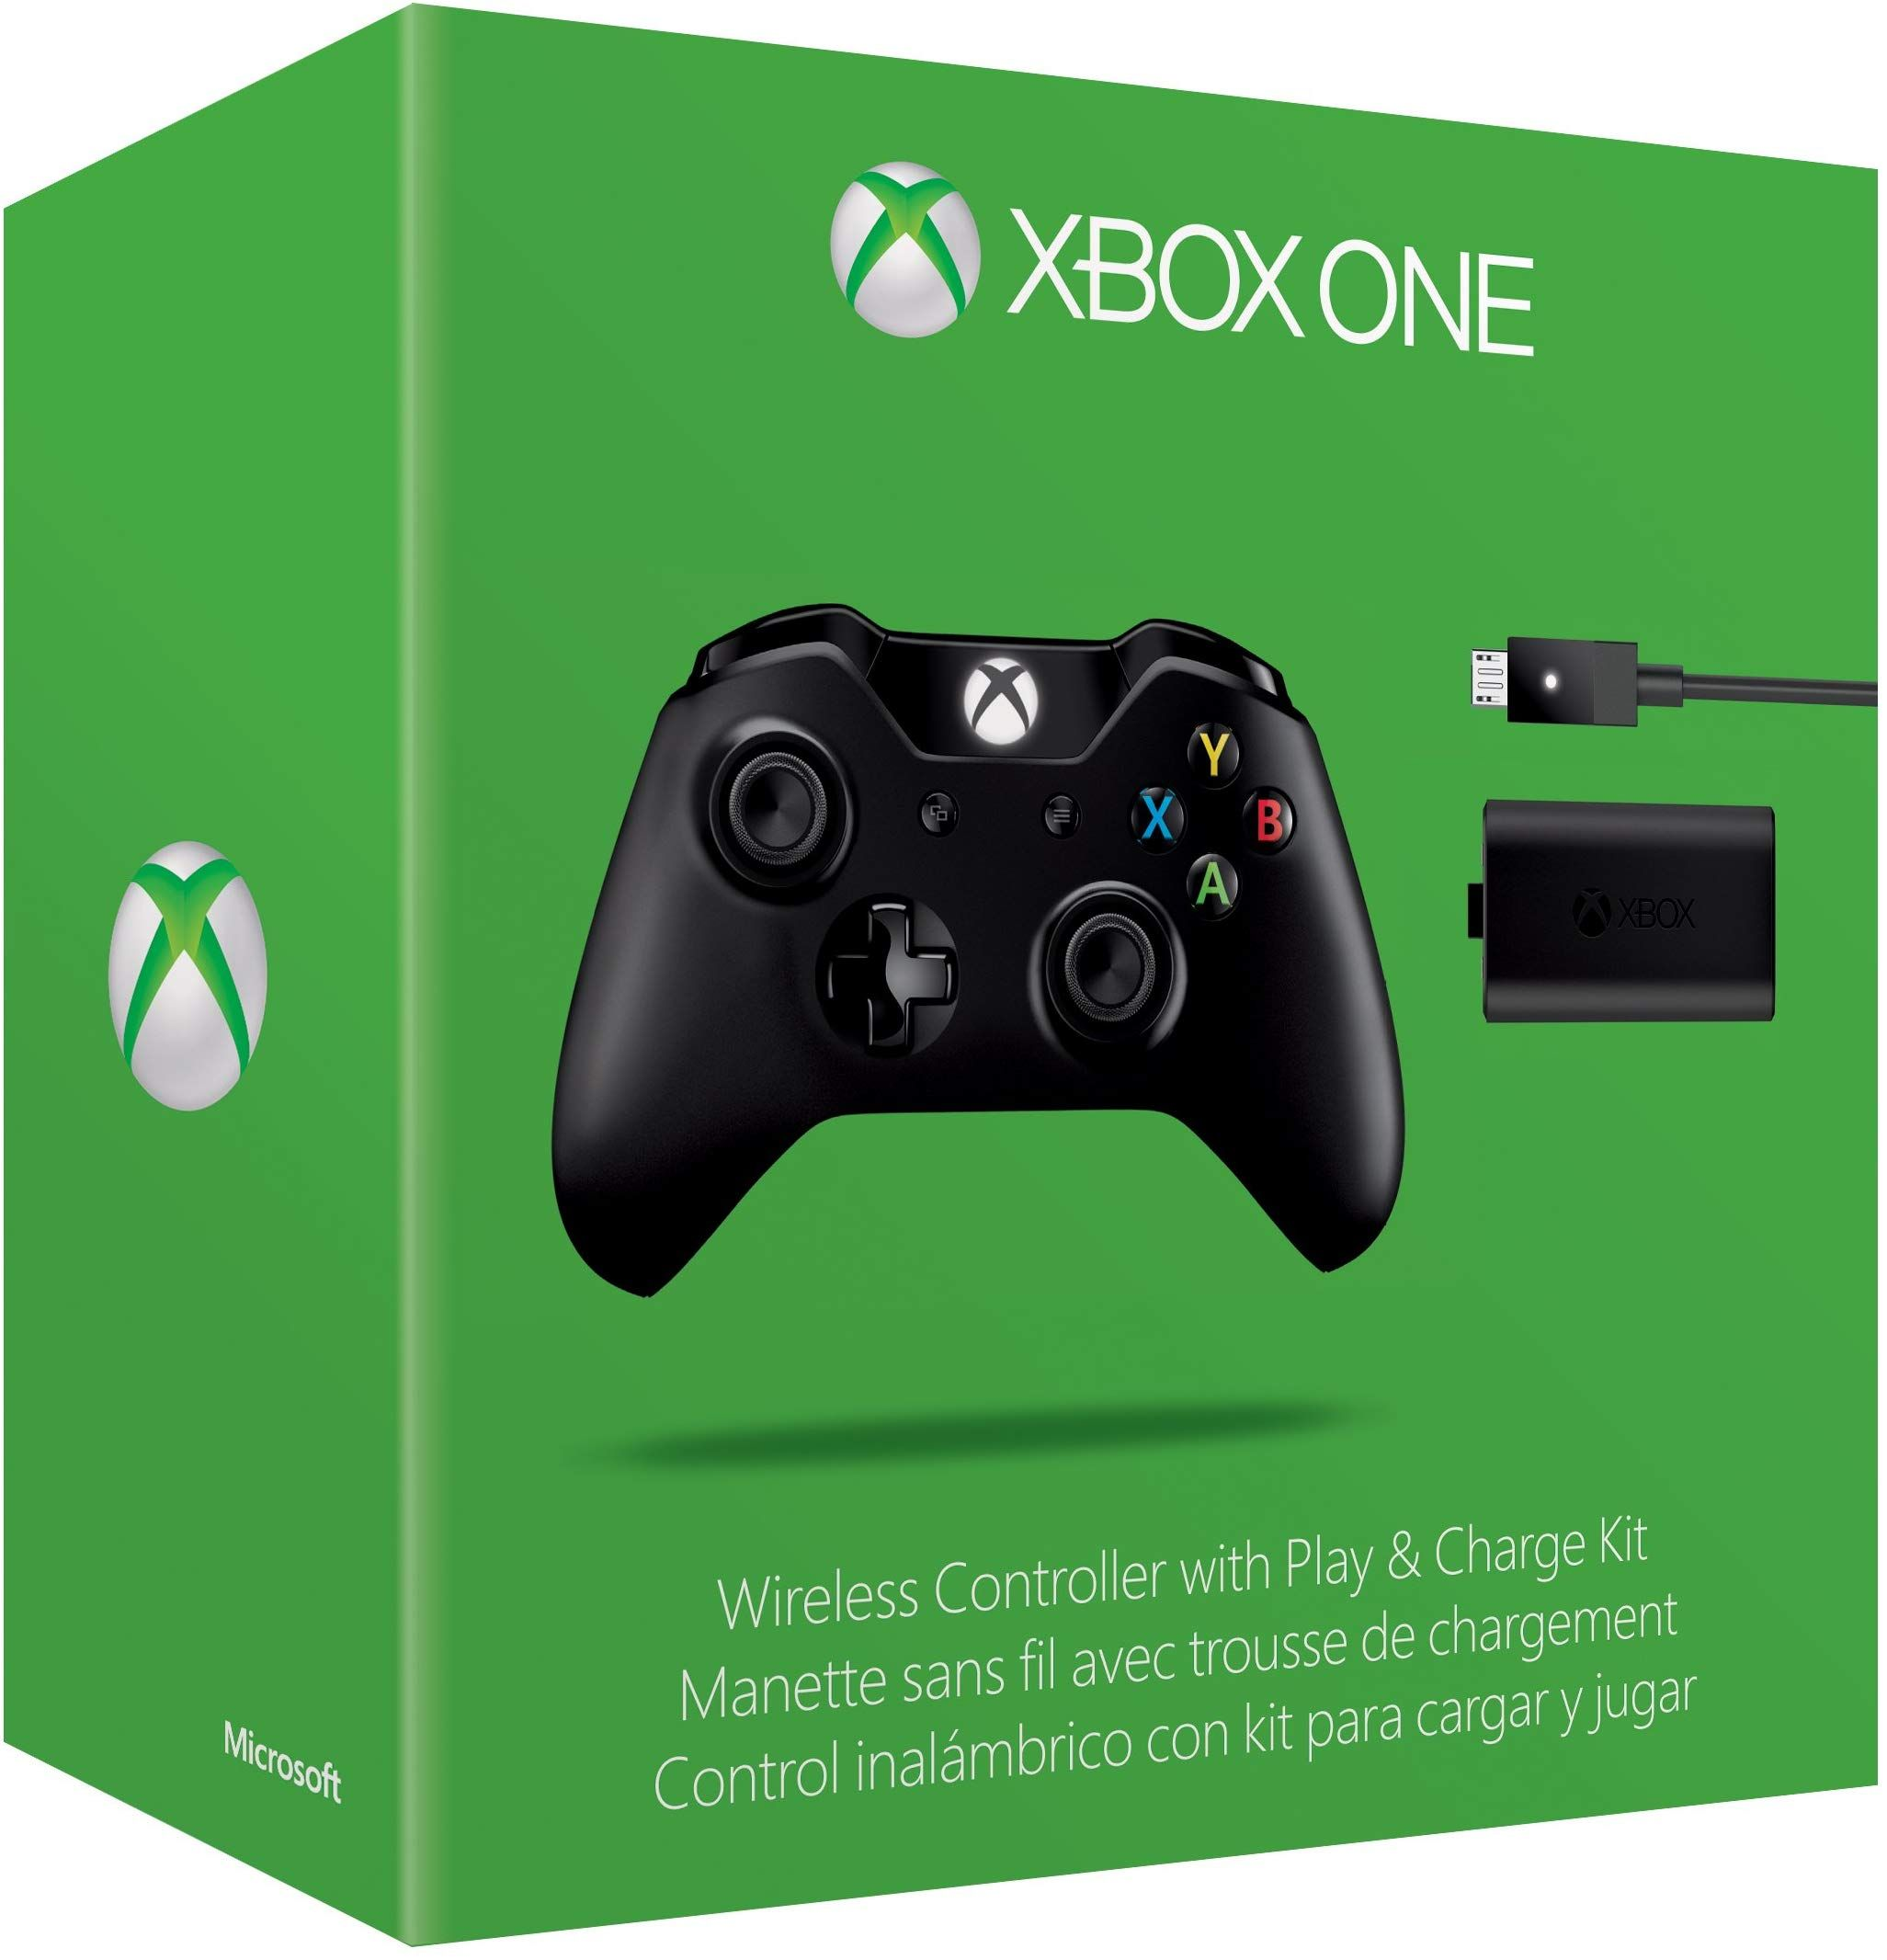 Xbox One Wireless Controller and Play & Charge Kit (Without